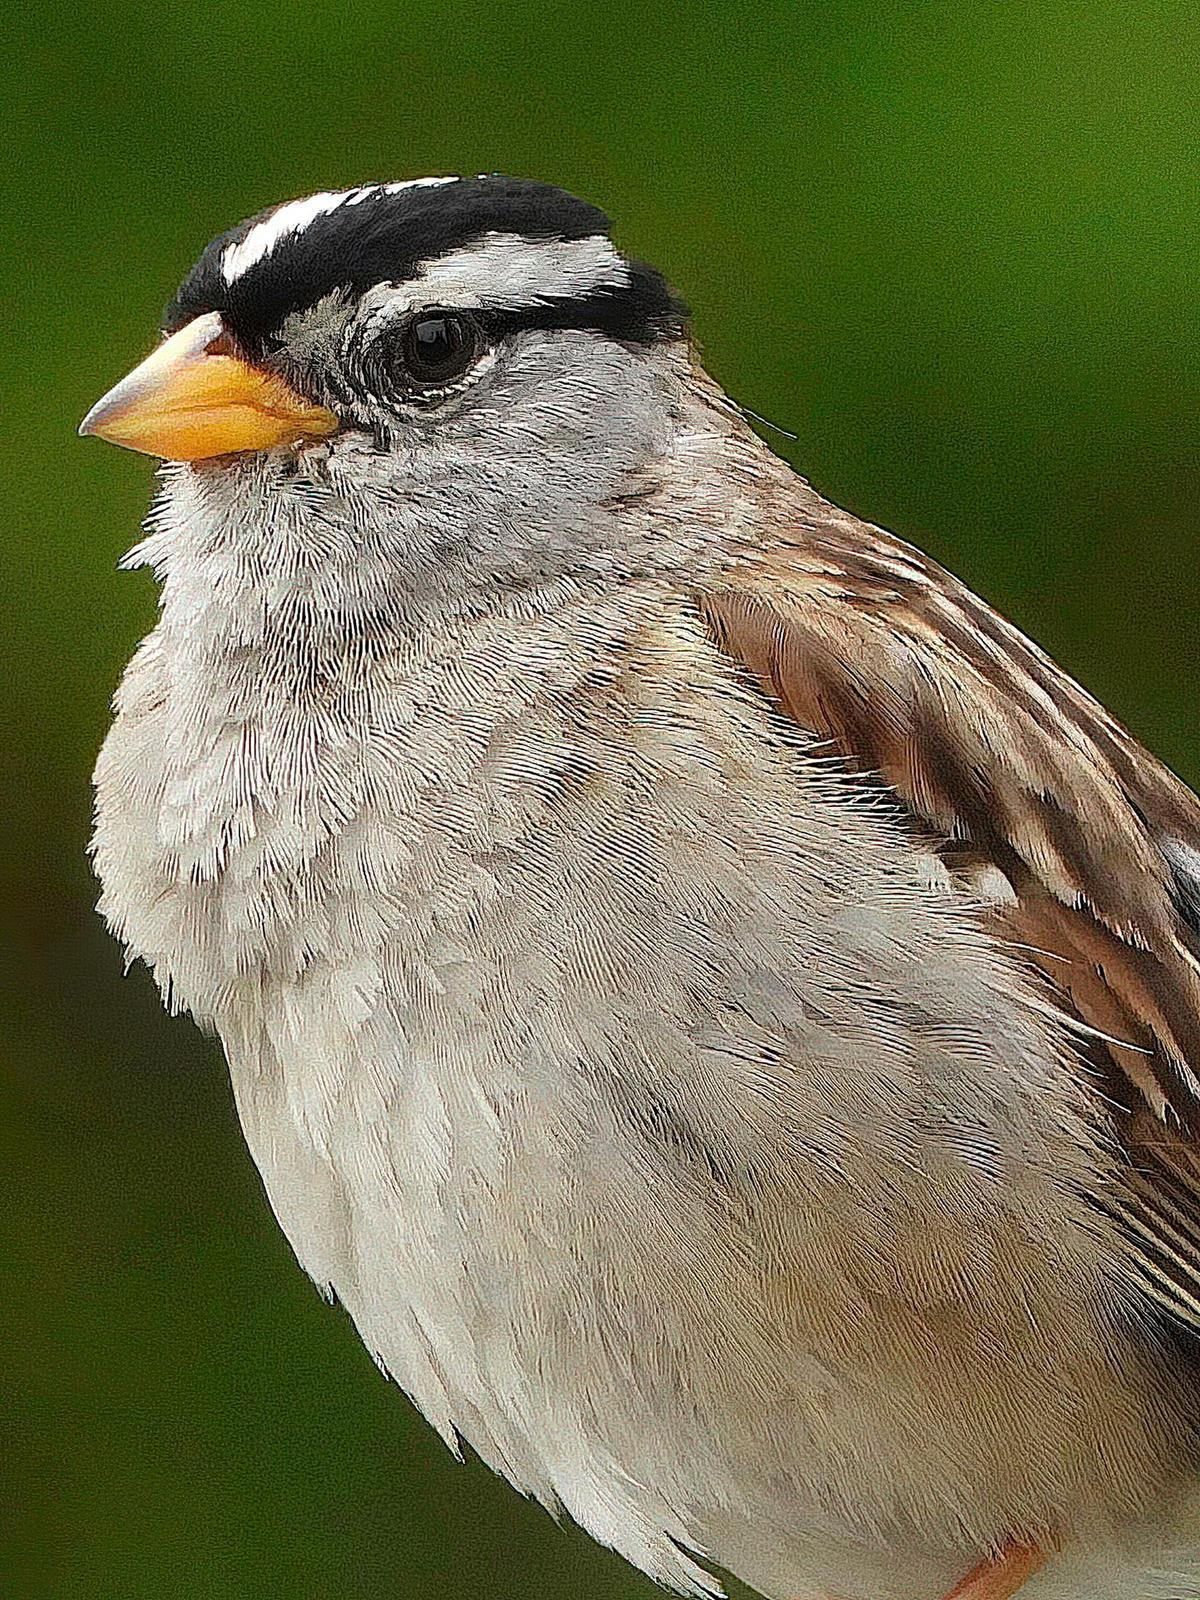 White-crowned Sparrow (pugetensis) Photo by Dan Tallman